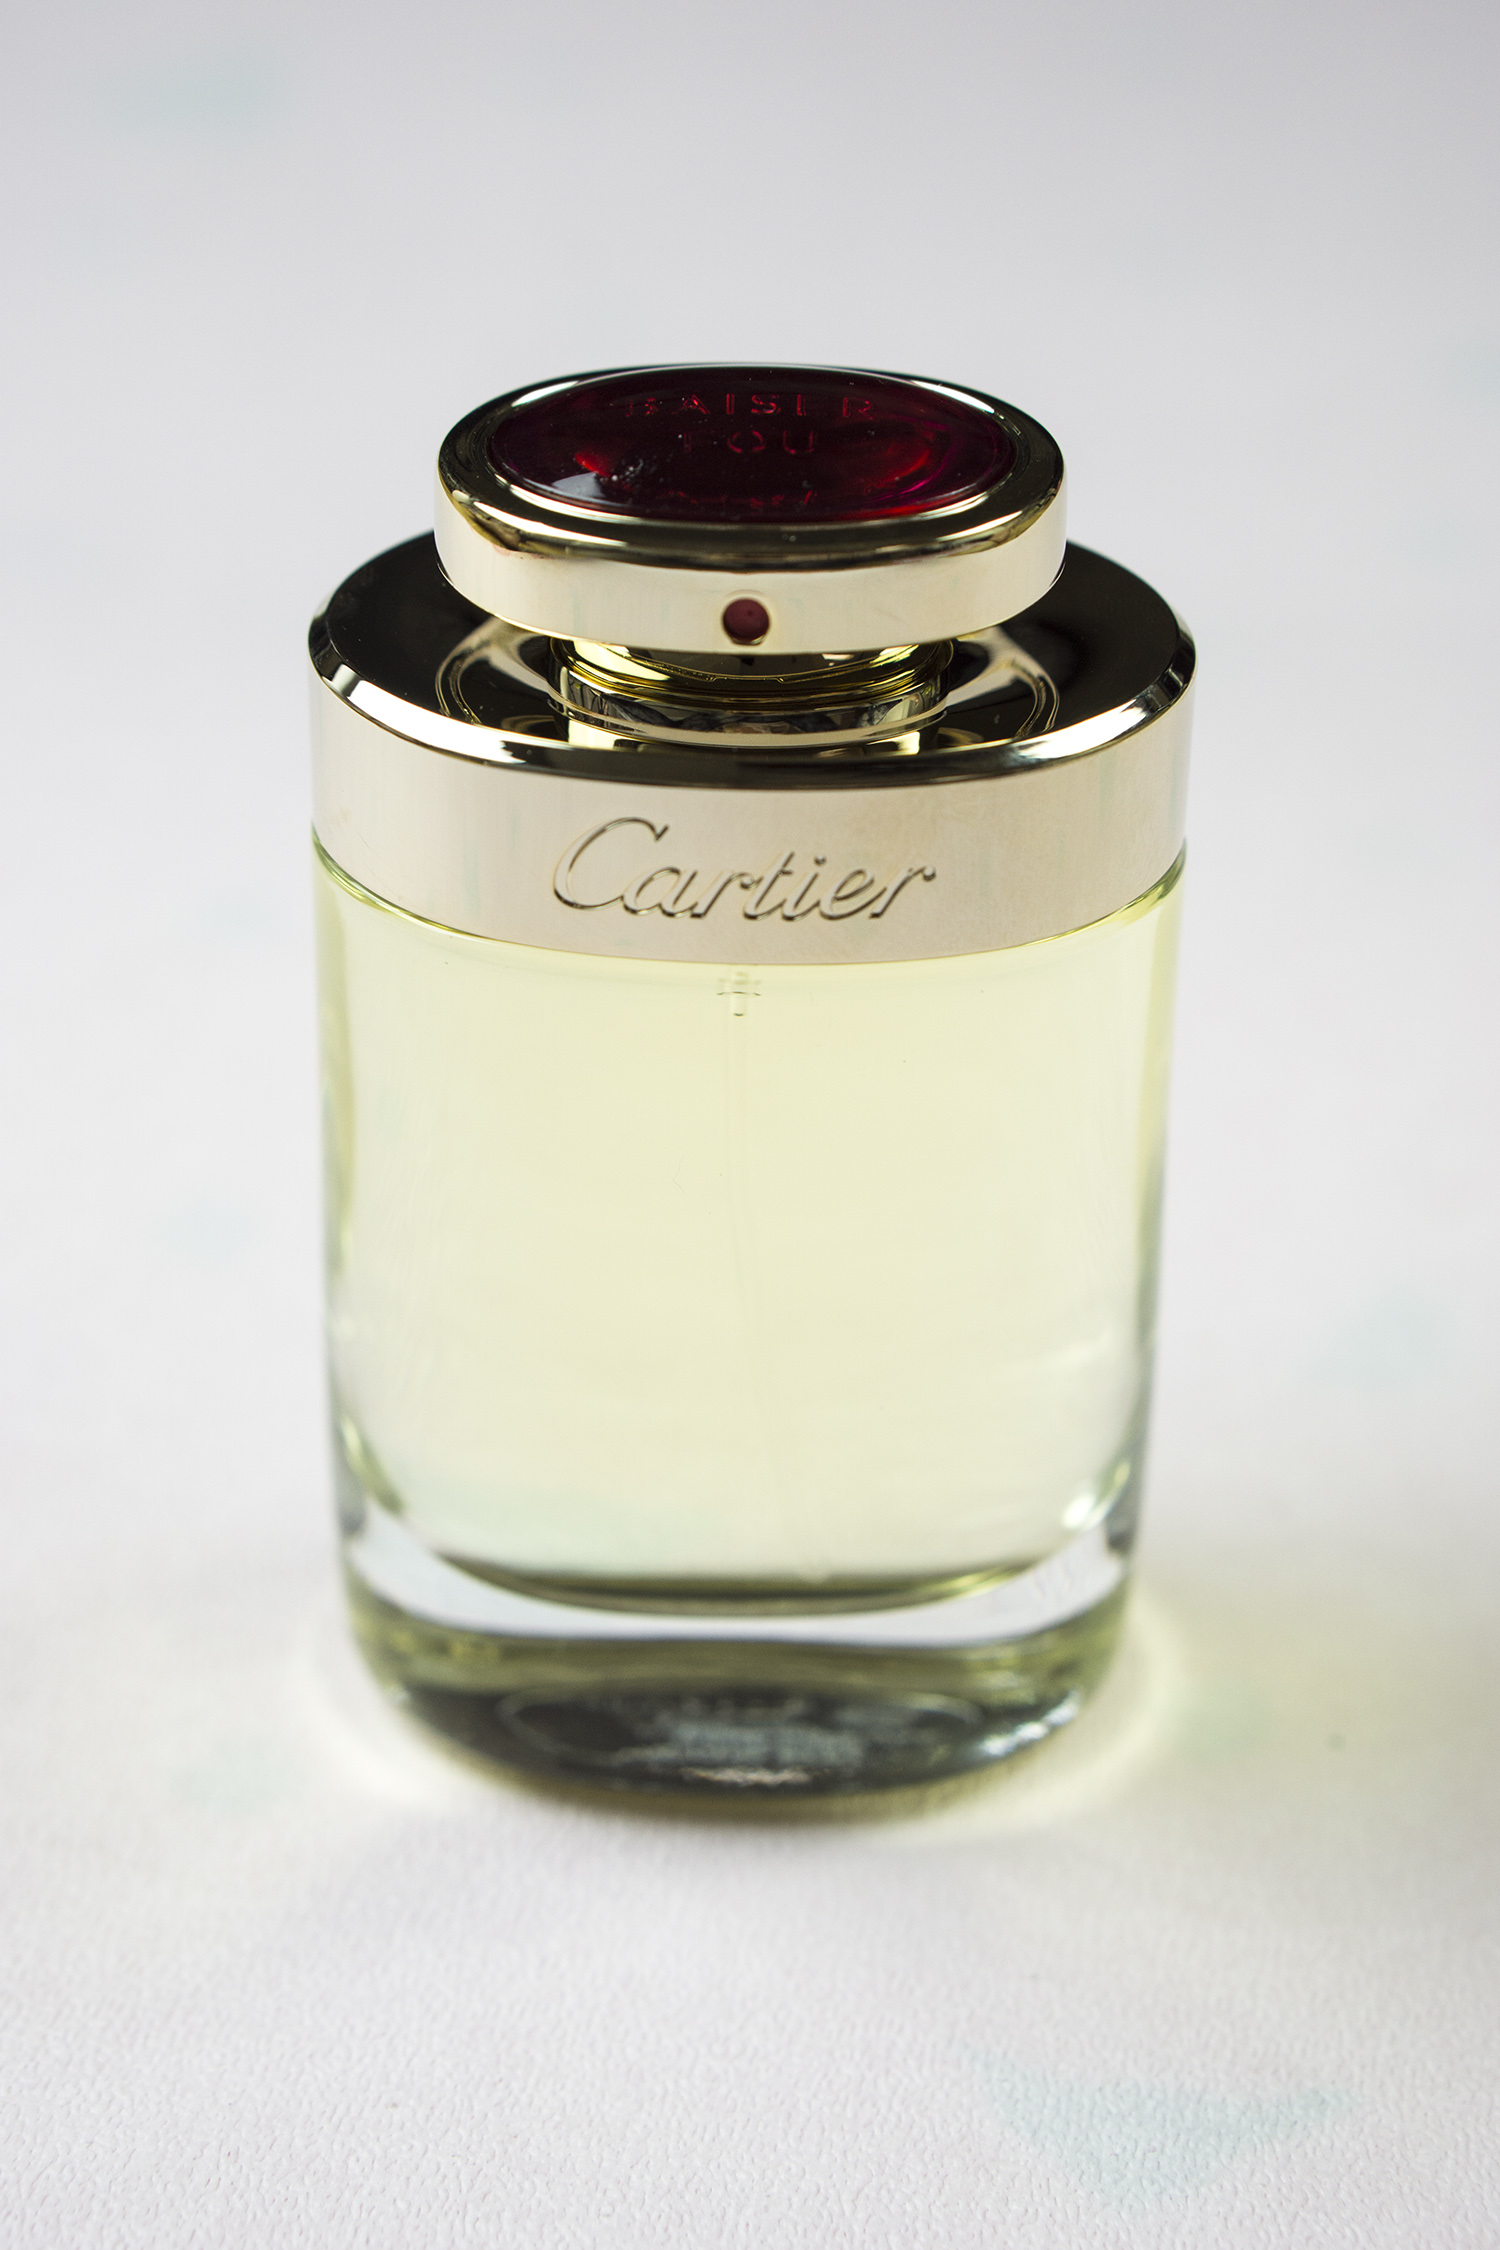 Cartier Baiser Fou Fragrance